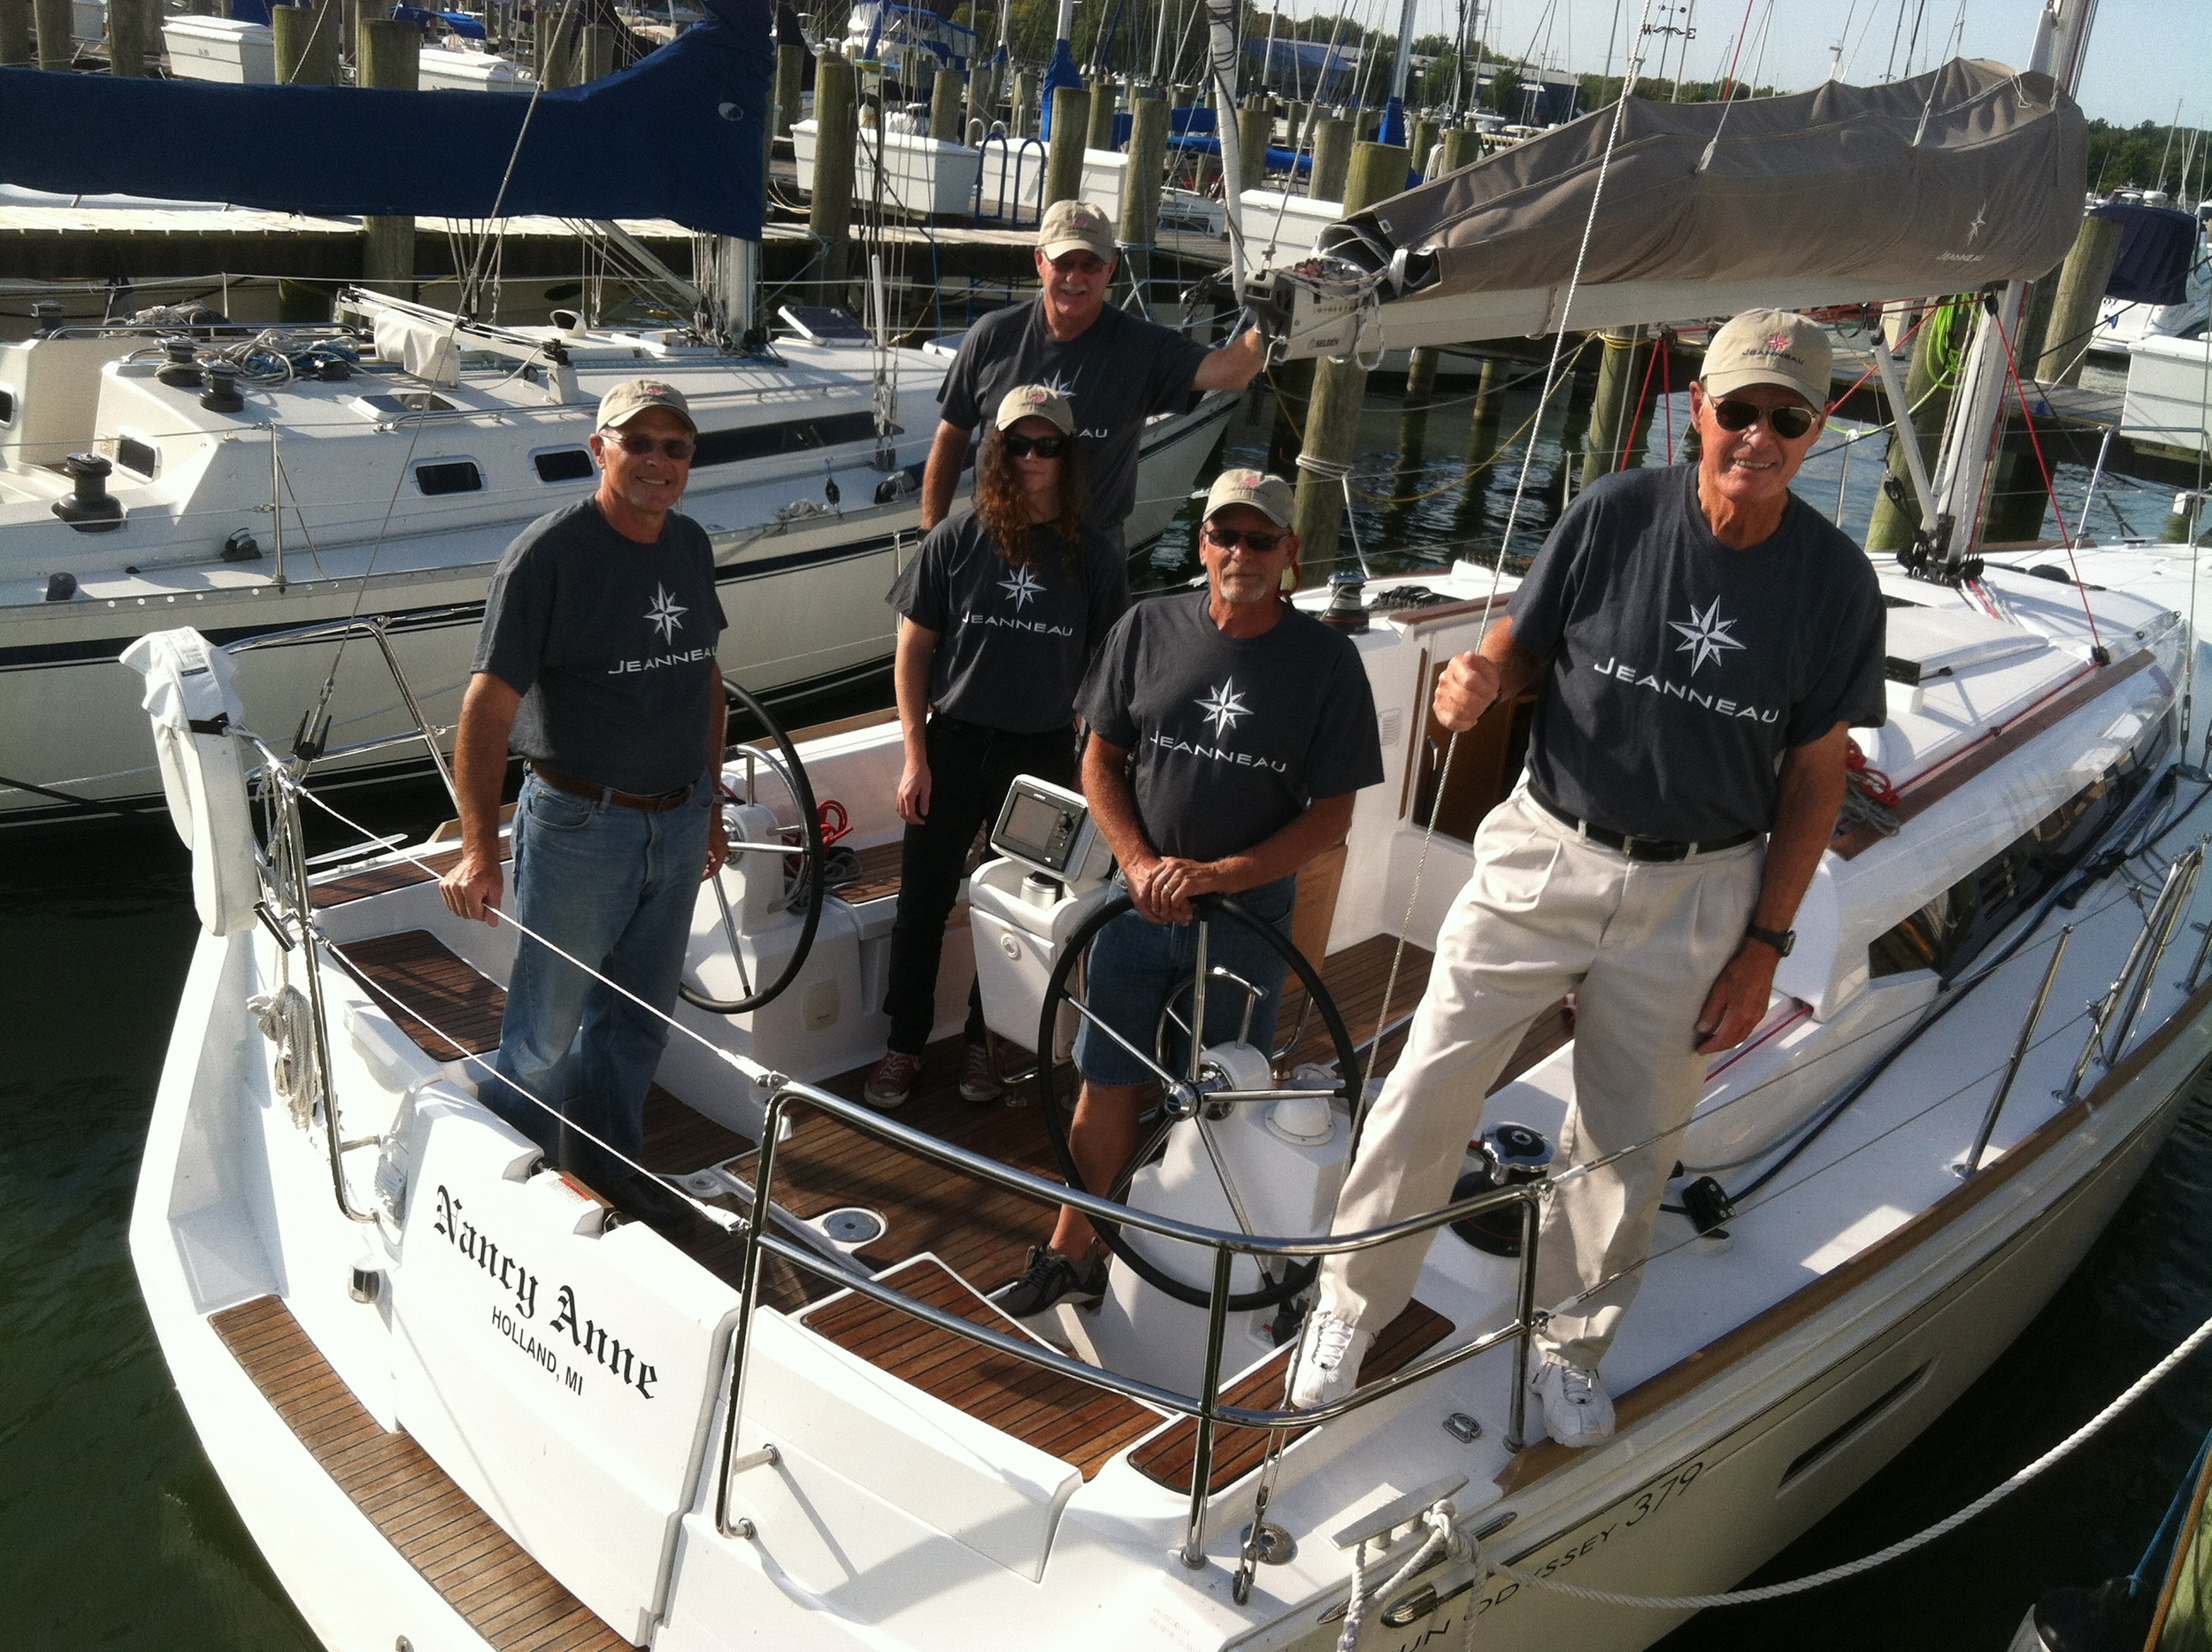 The mighty racing crew of the Nancy Anne